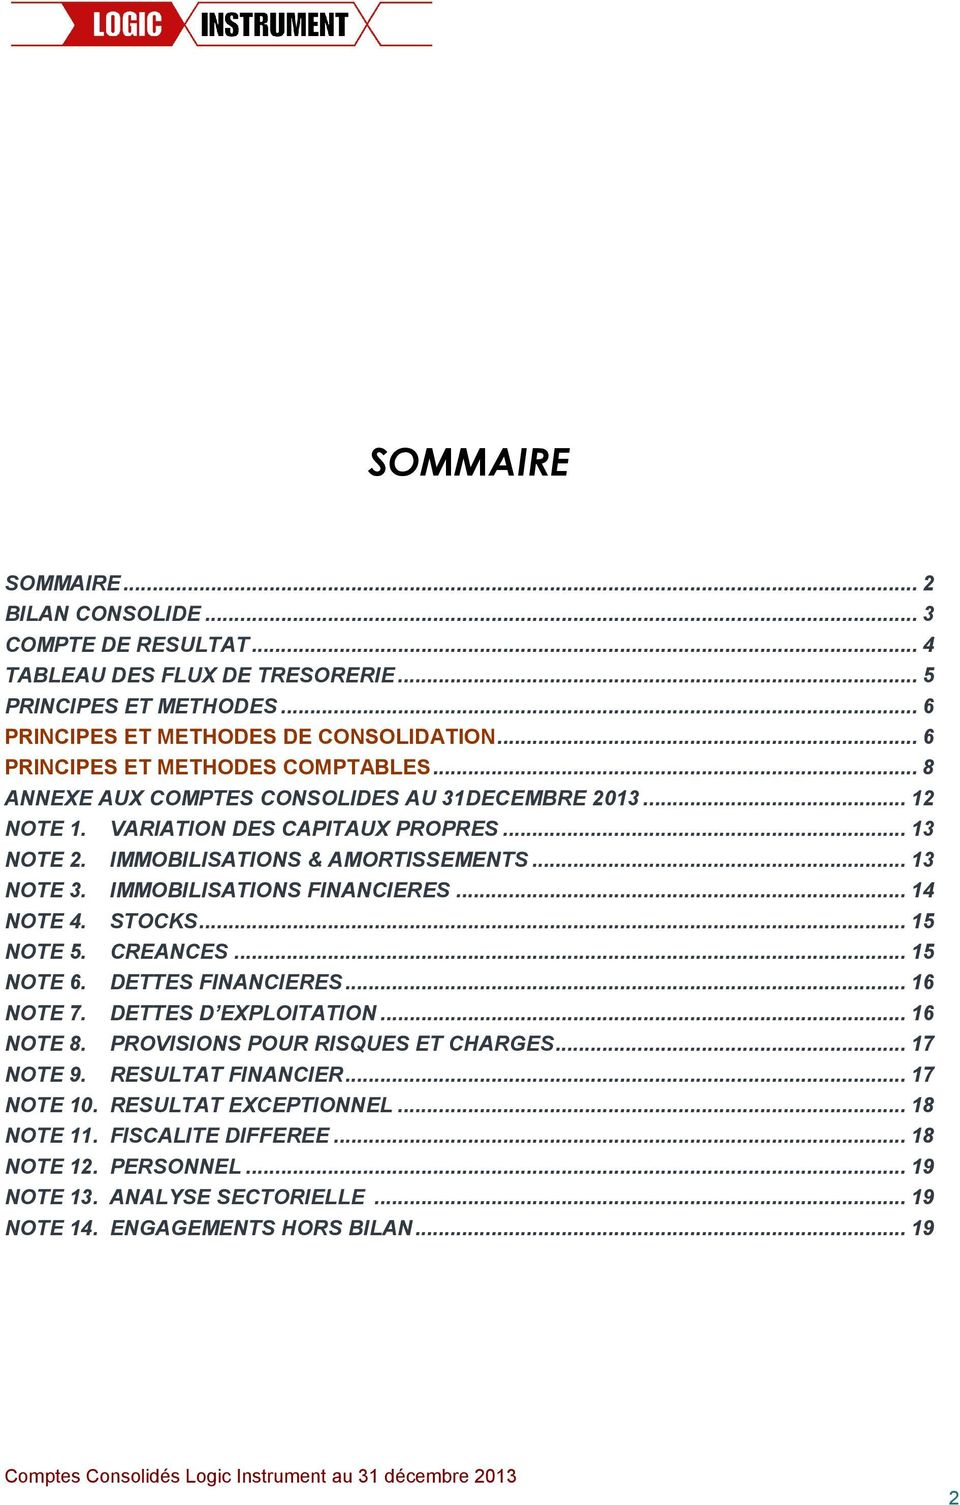 .. 13 NOTE 3. IMMOBILISATIONS FINANCIERES... 14 NOTE 4. STOCKS... 15 NOTE 5. CREANCES... 15 NOTE 6. DETTES FINANCIERES... 16 NOTE 7. DETTES D EXPLOITATION... 16 NOTE 8.